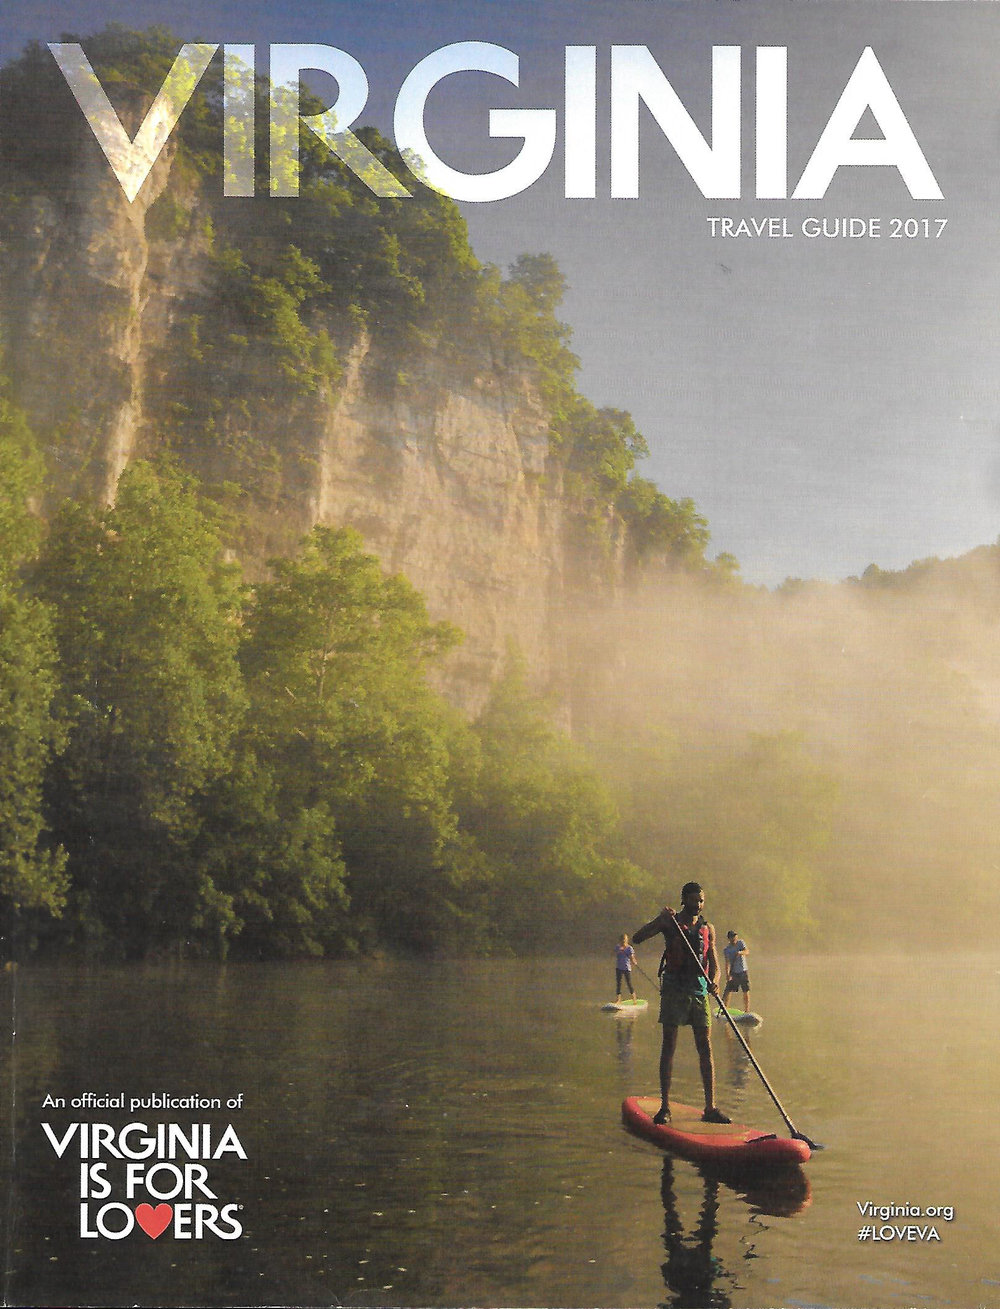 Virginia Travel Guide.jpg